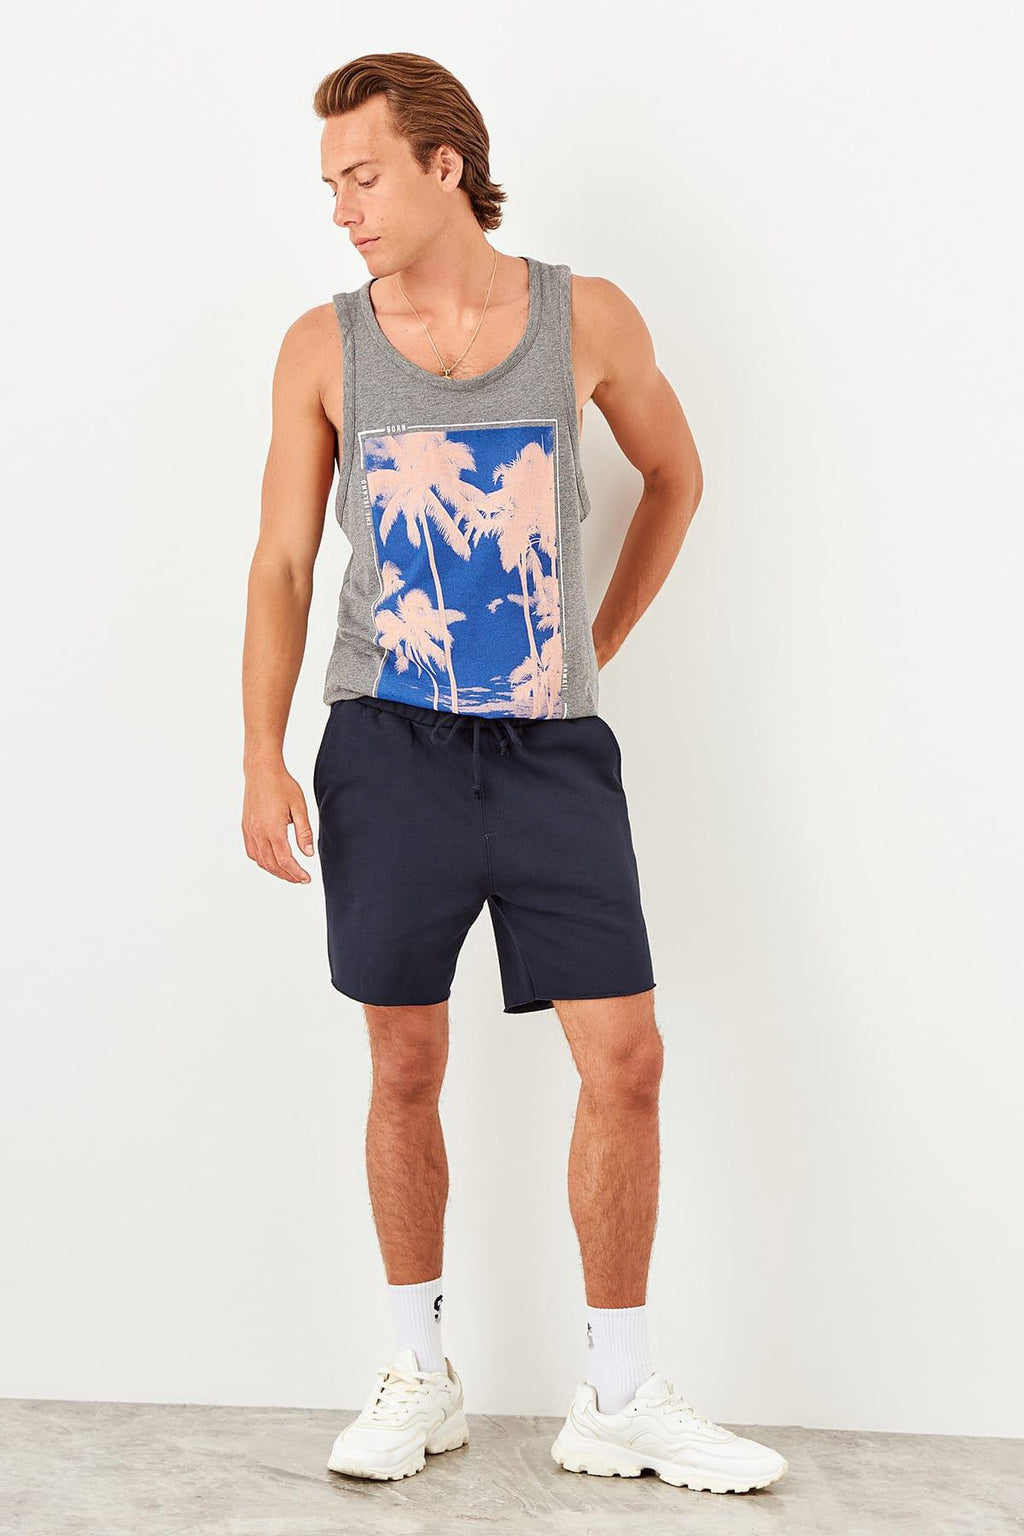 New Navy Blue Shorts for Men - shopaholics